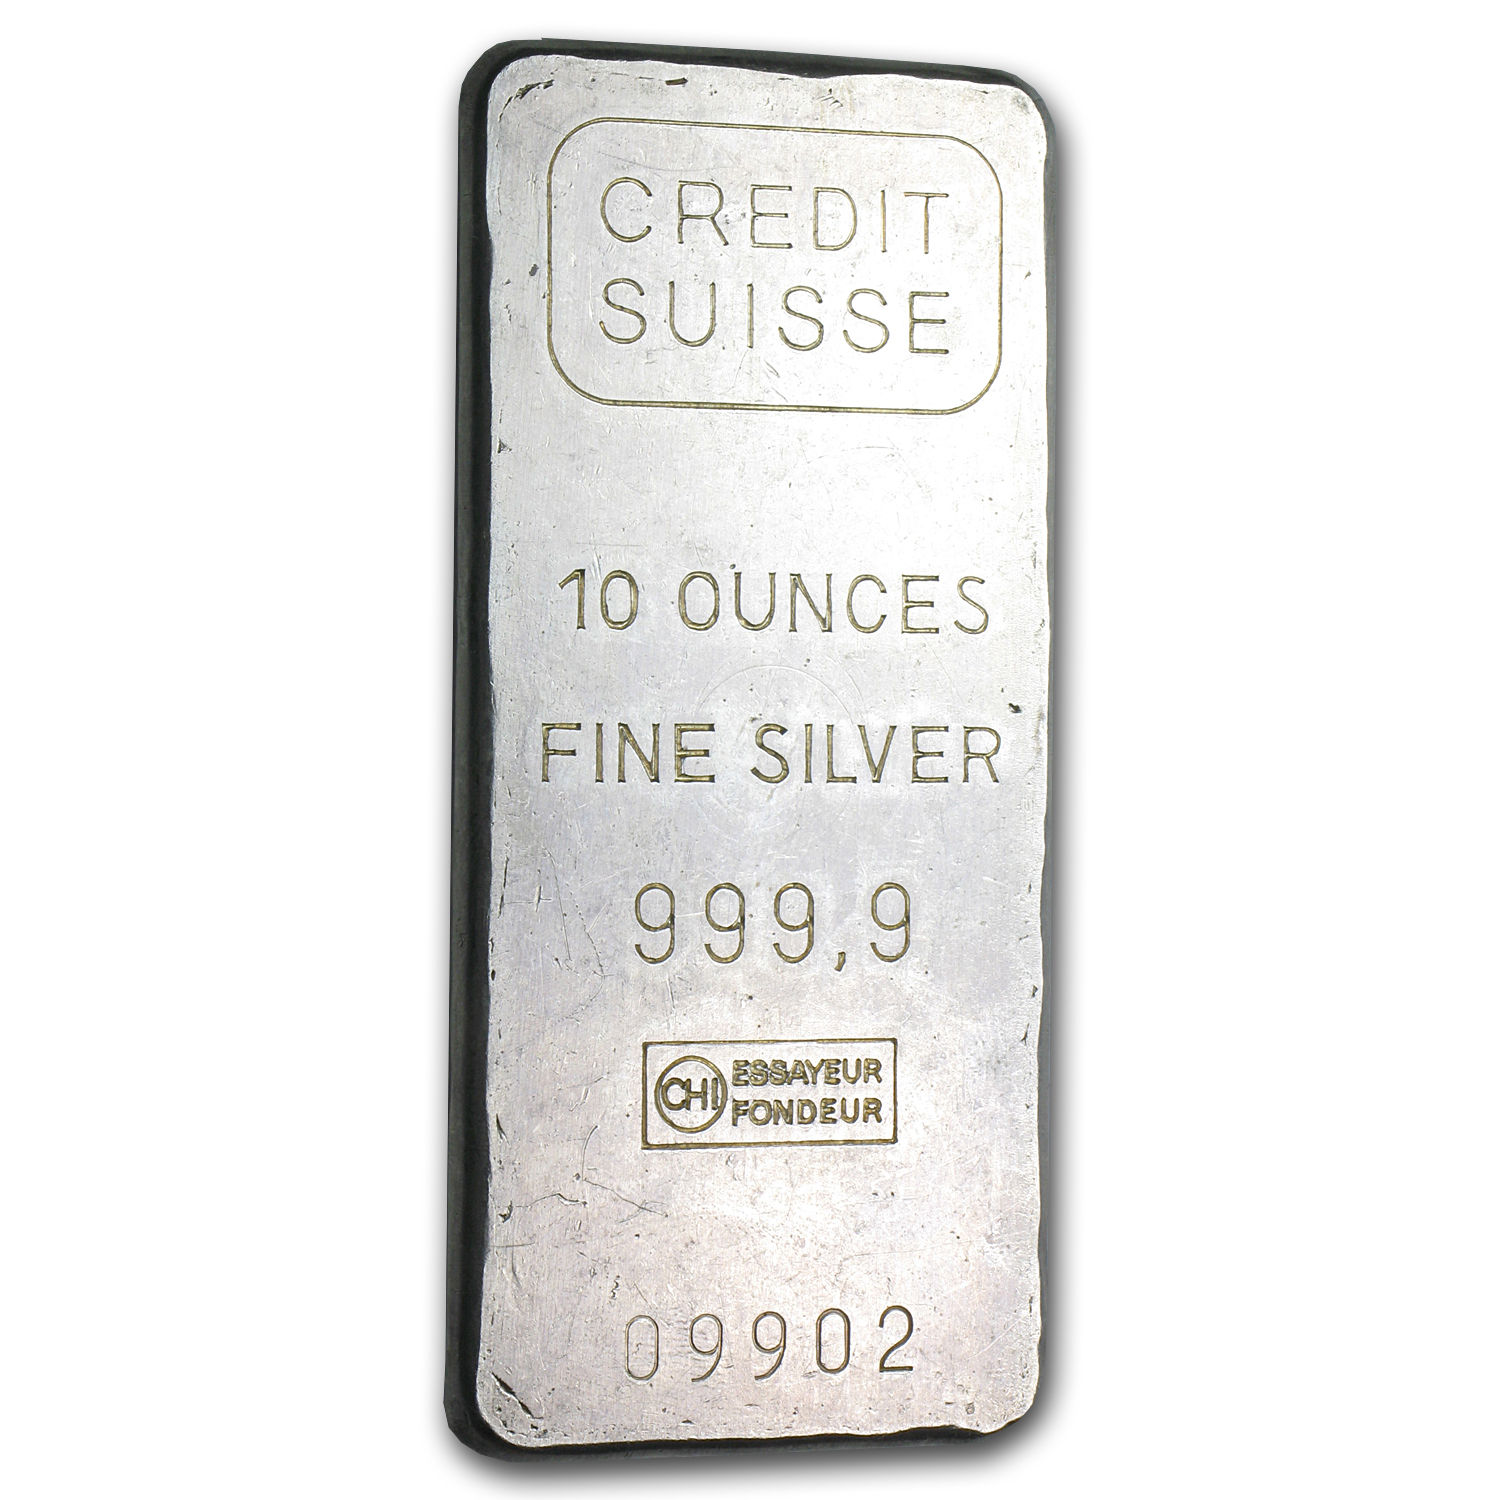 10 oz Silver Bar - Credit Suisse (Plain back)